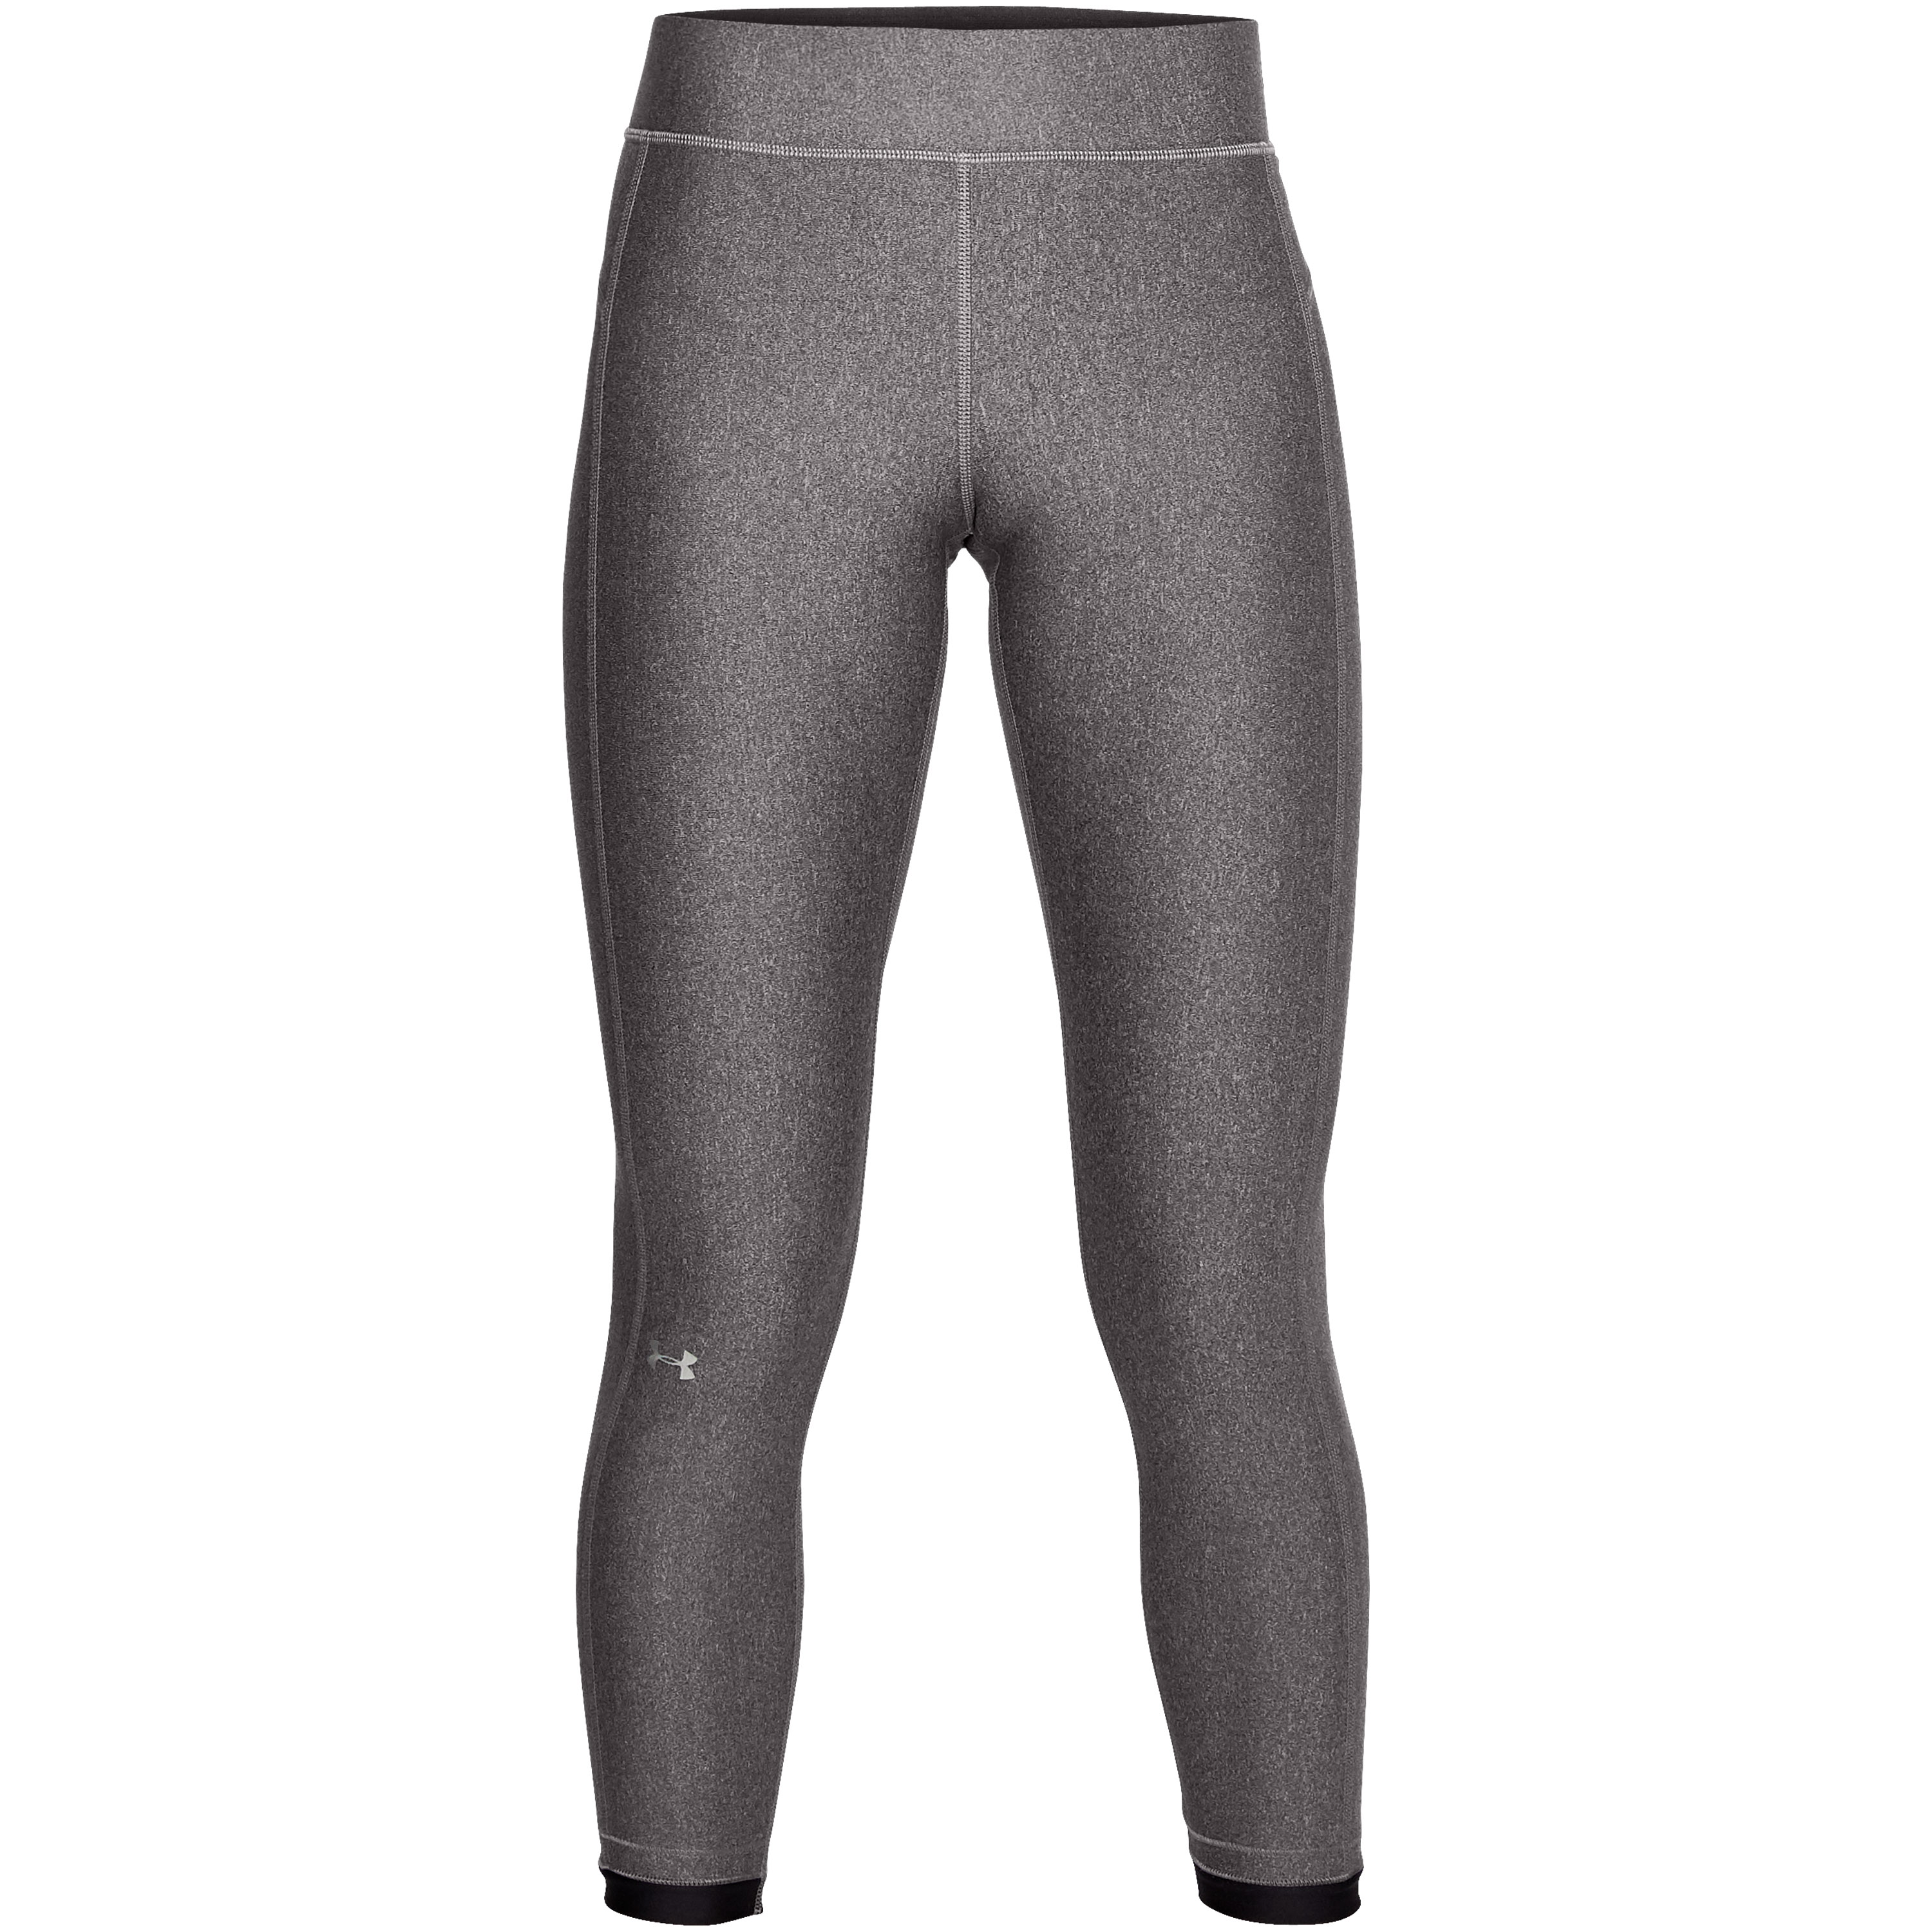 Under Armour Pantalon de Jogging Femmes Ankle Crop gris